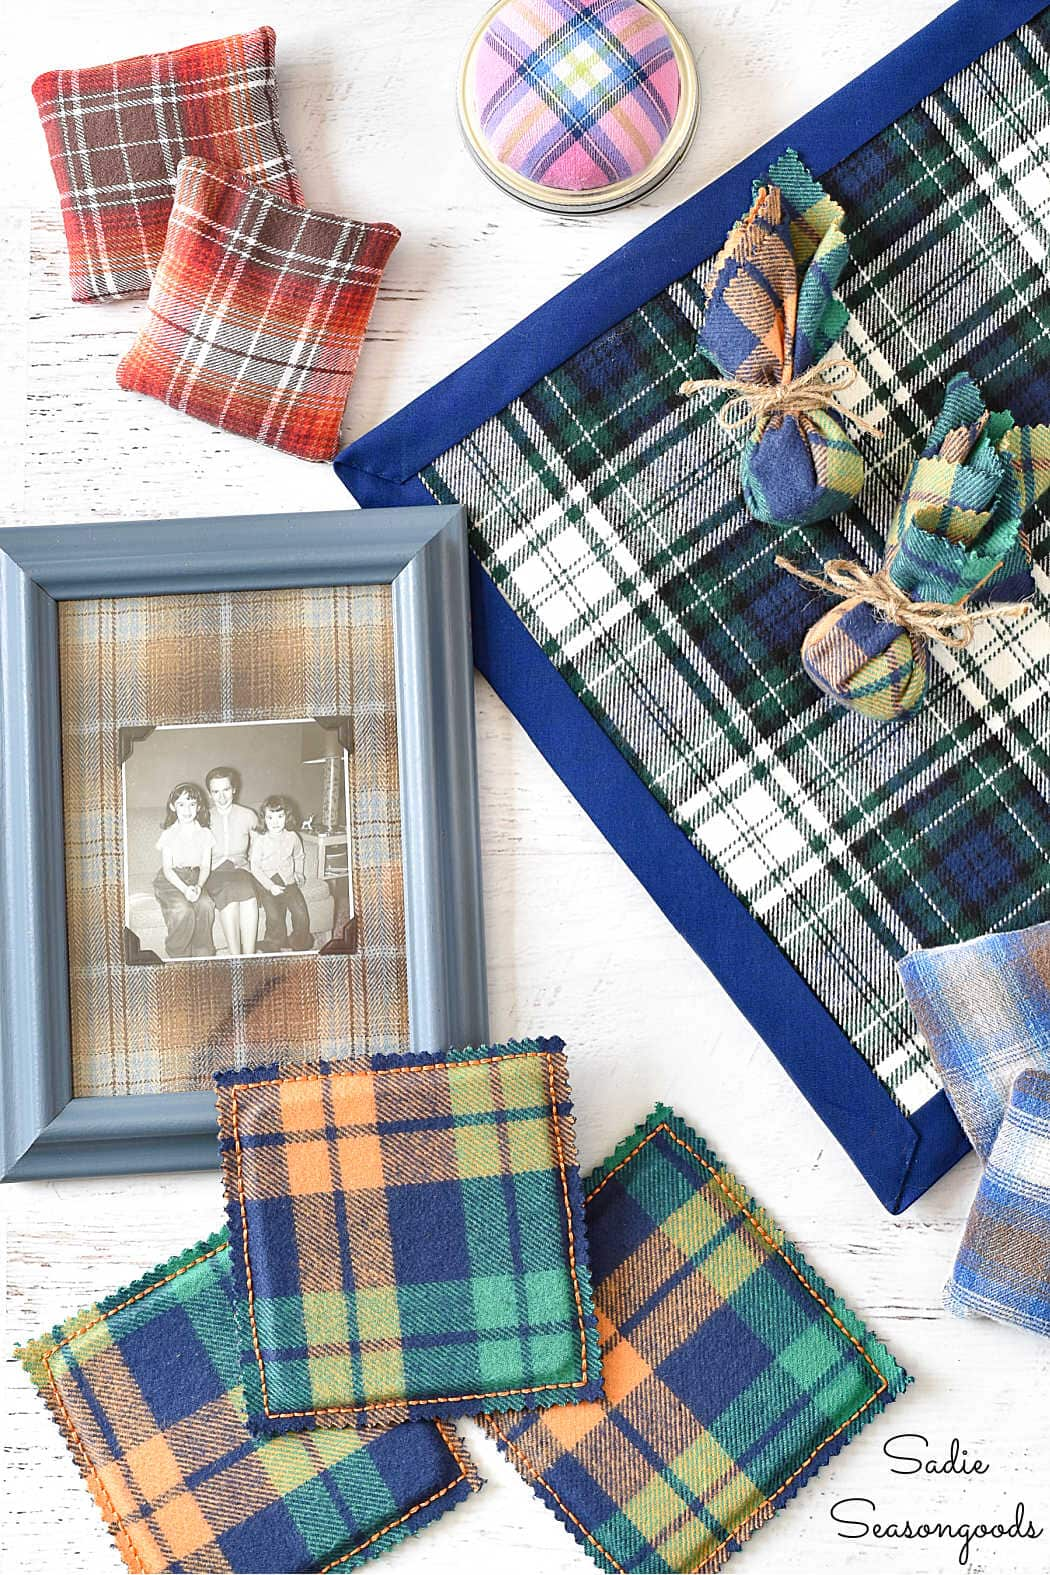 diy gift ideas from crafting with flannel